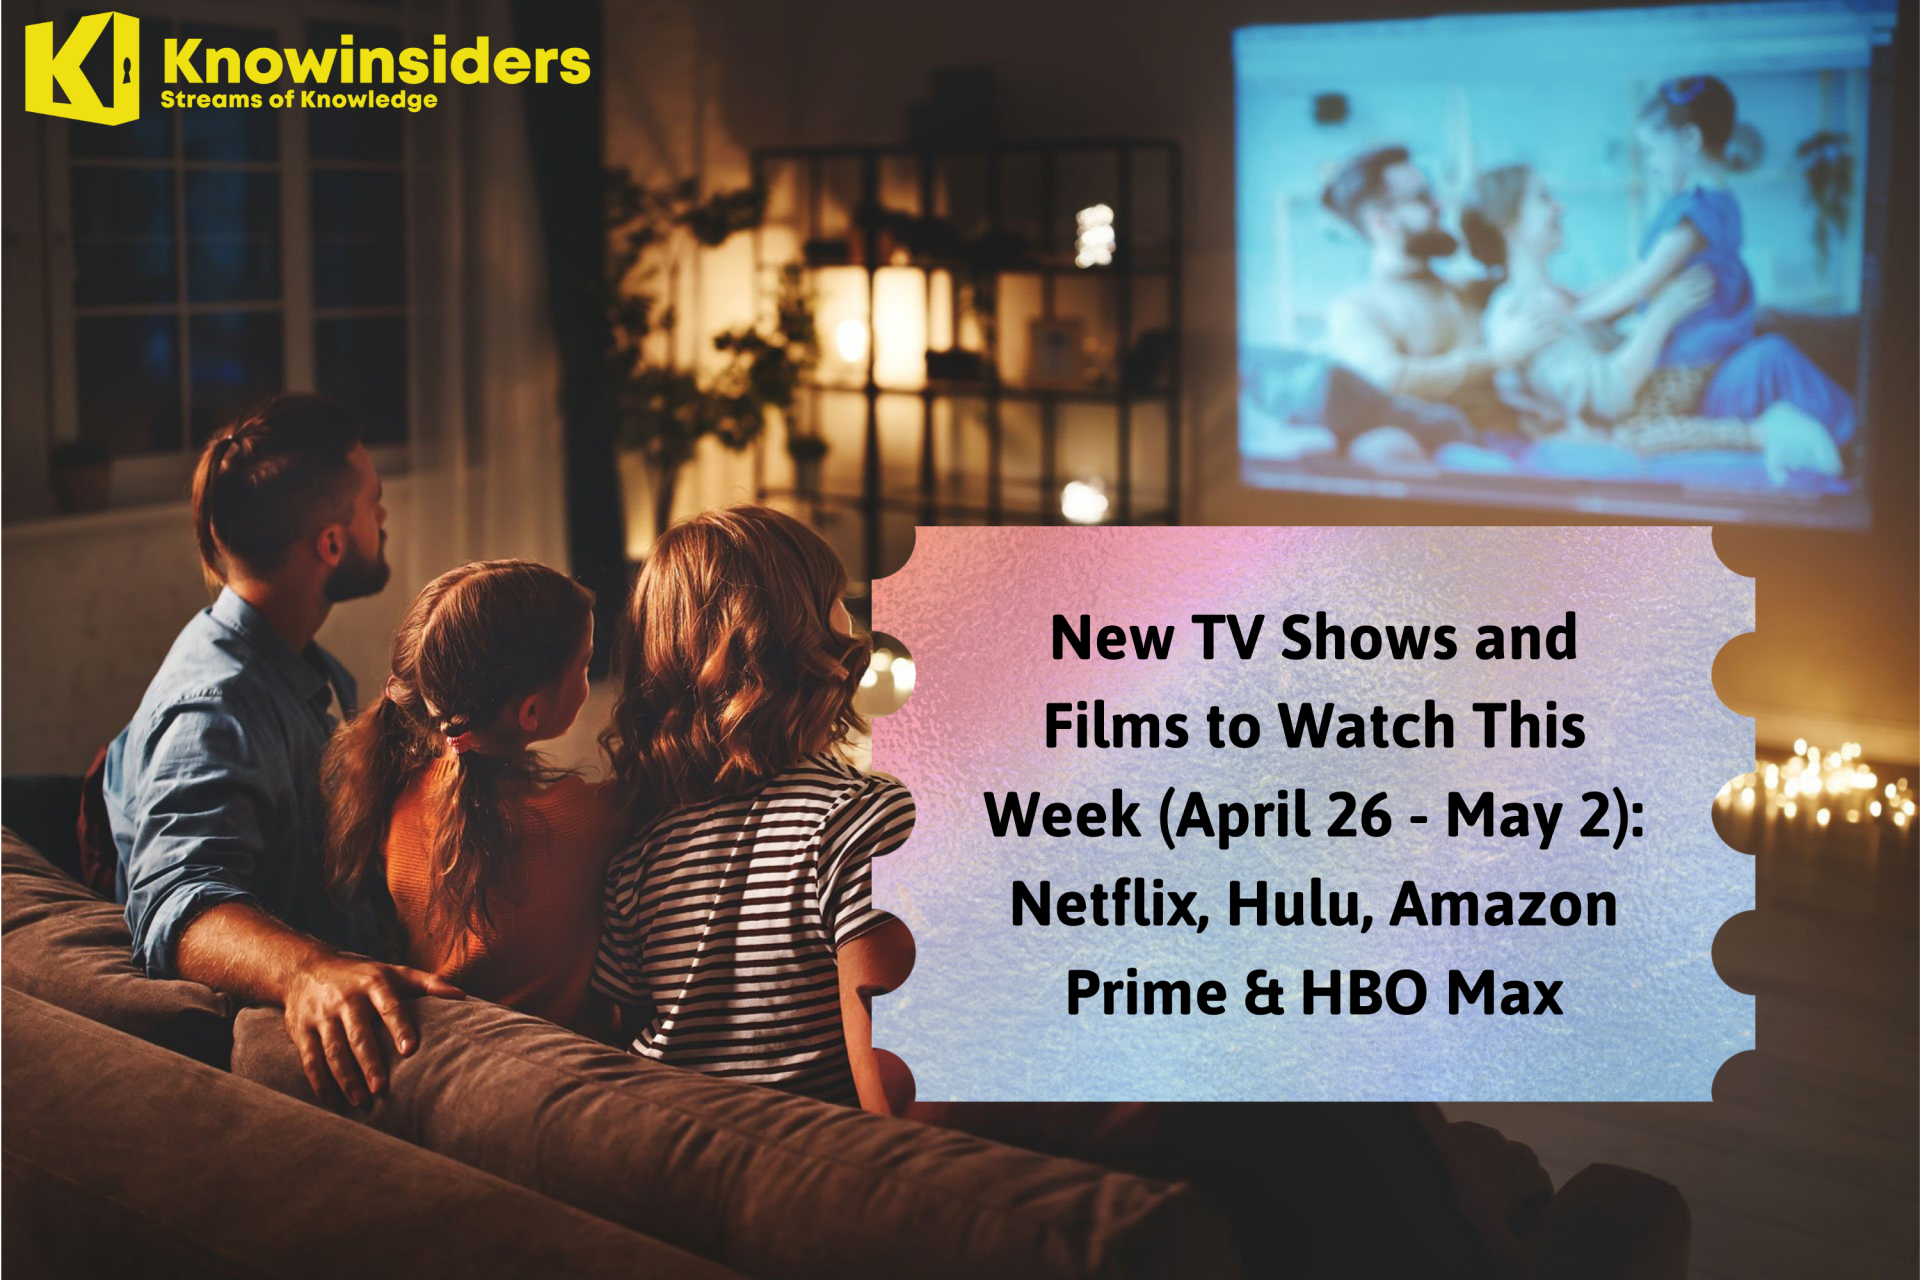 New TV Shows and Films to Watch This Week (April 26 - May 2): Netflix, Hulu, Amazon Prime & HBO Max